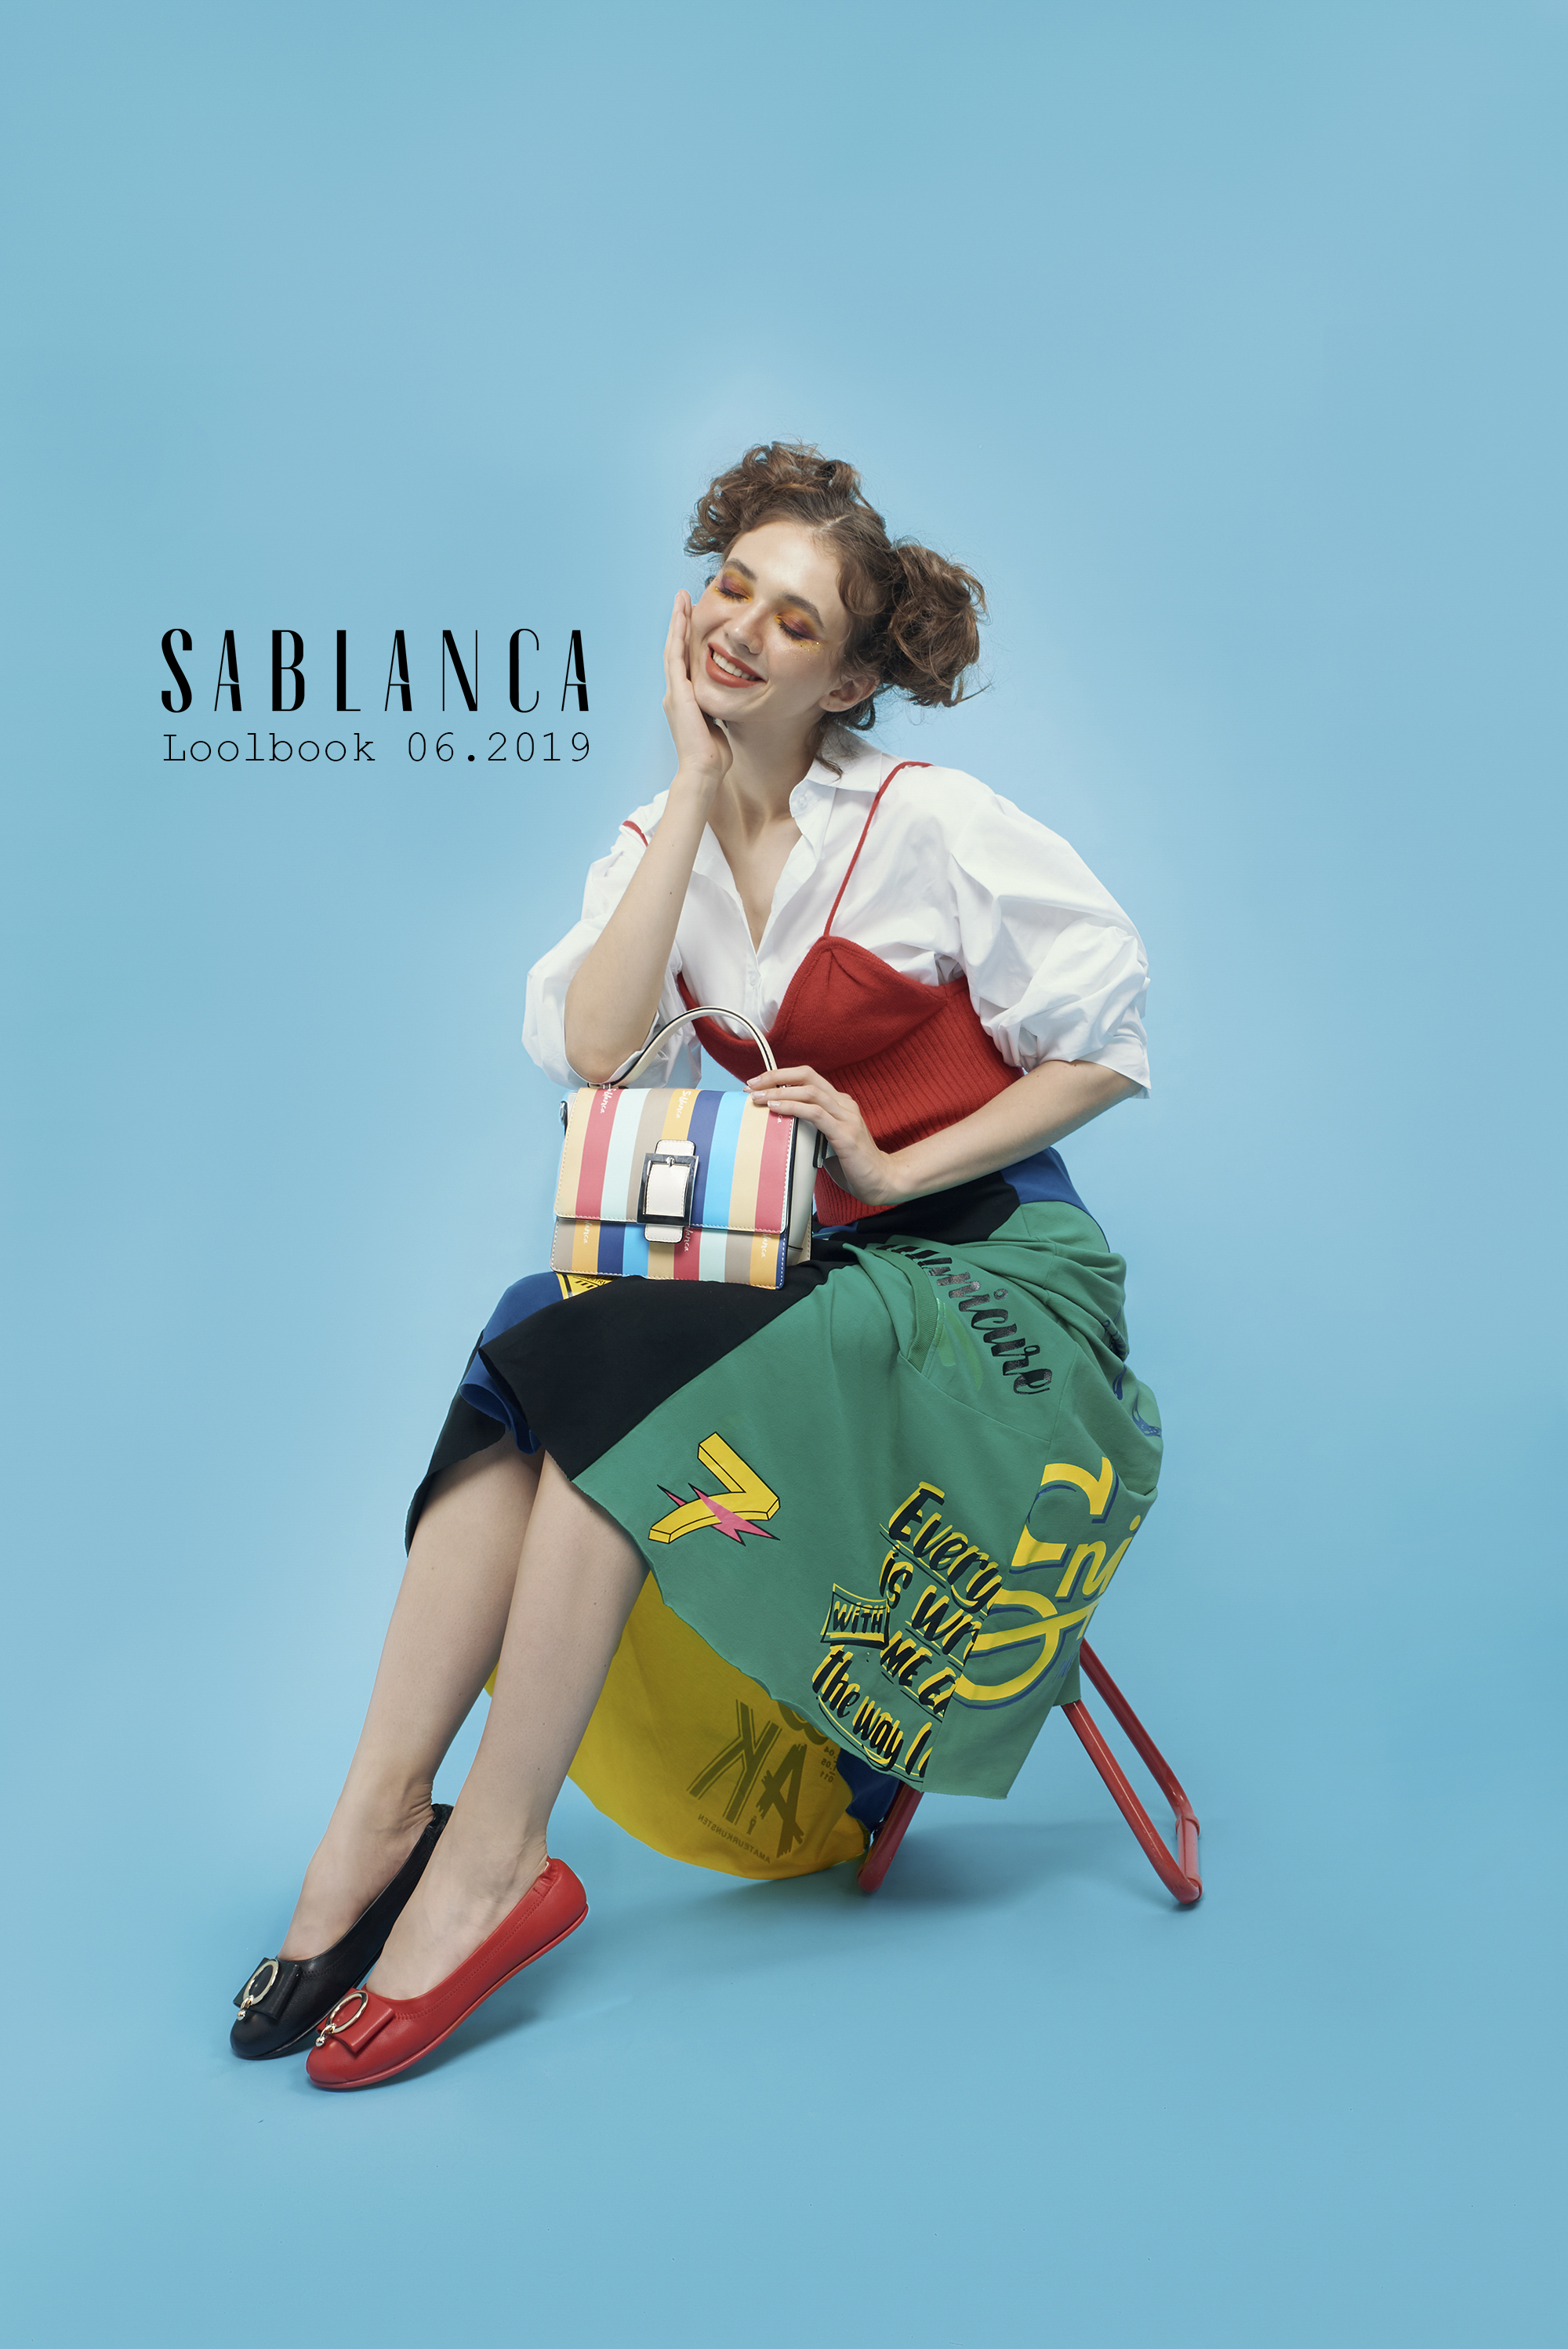 sablanca-new-arrival-take-your-summer-now